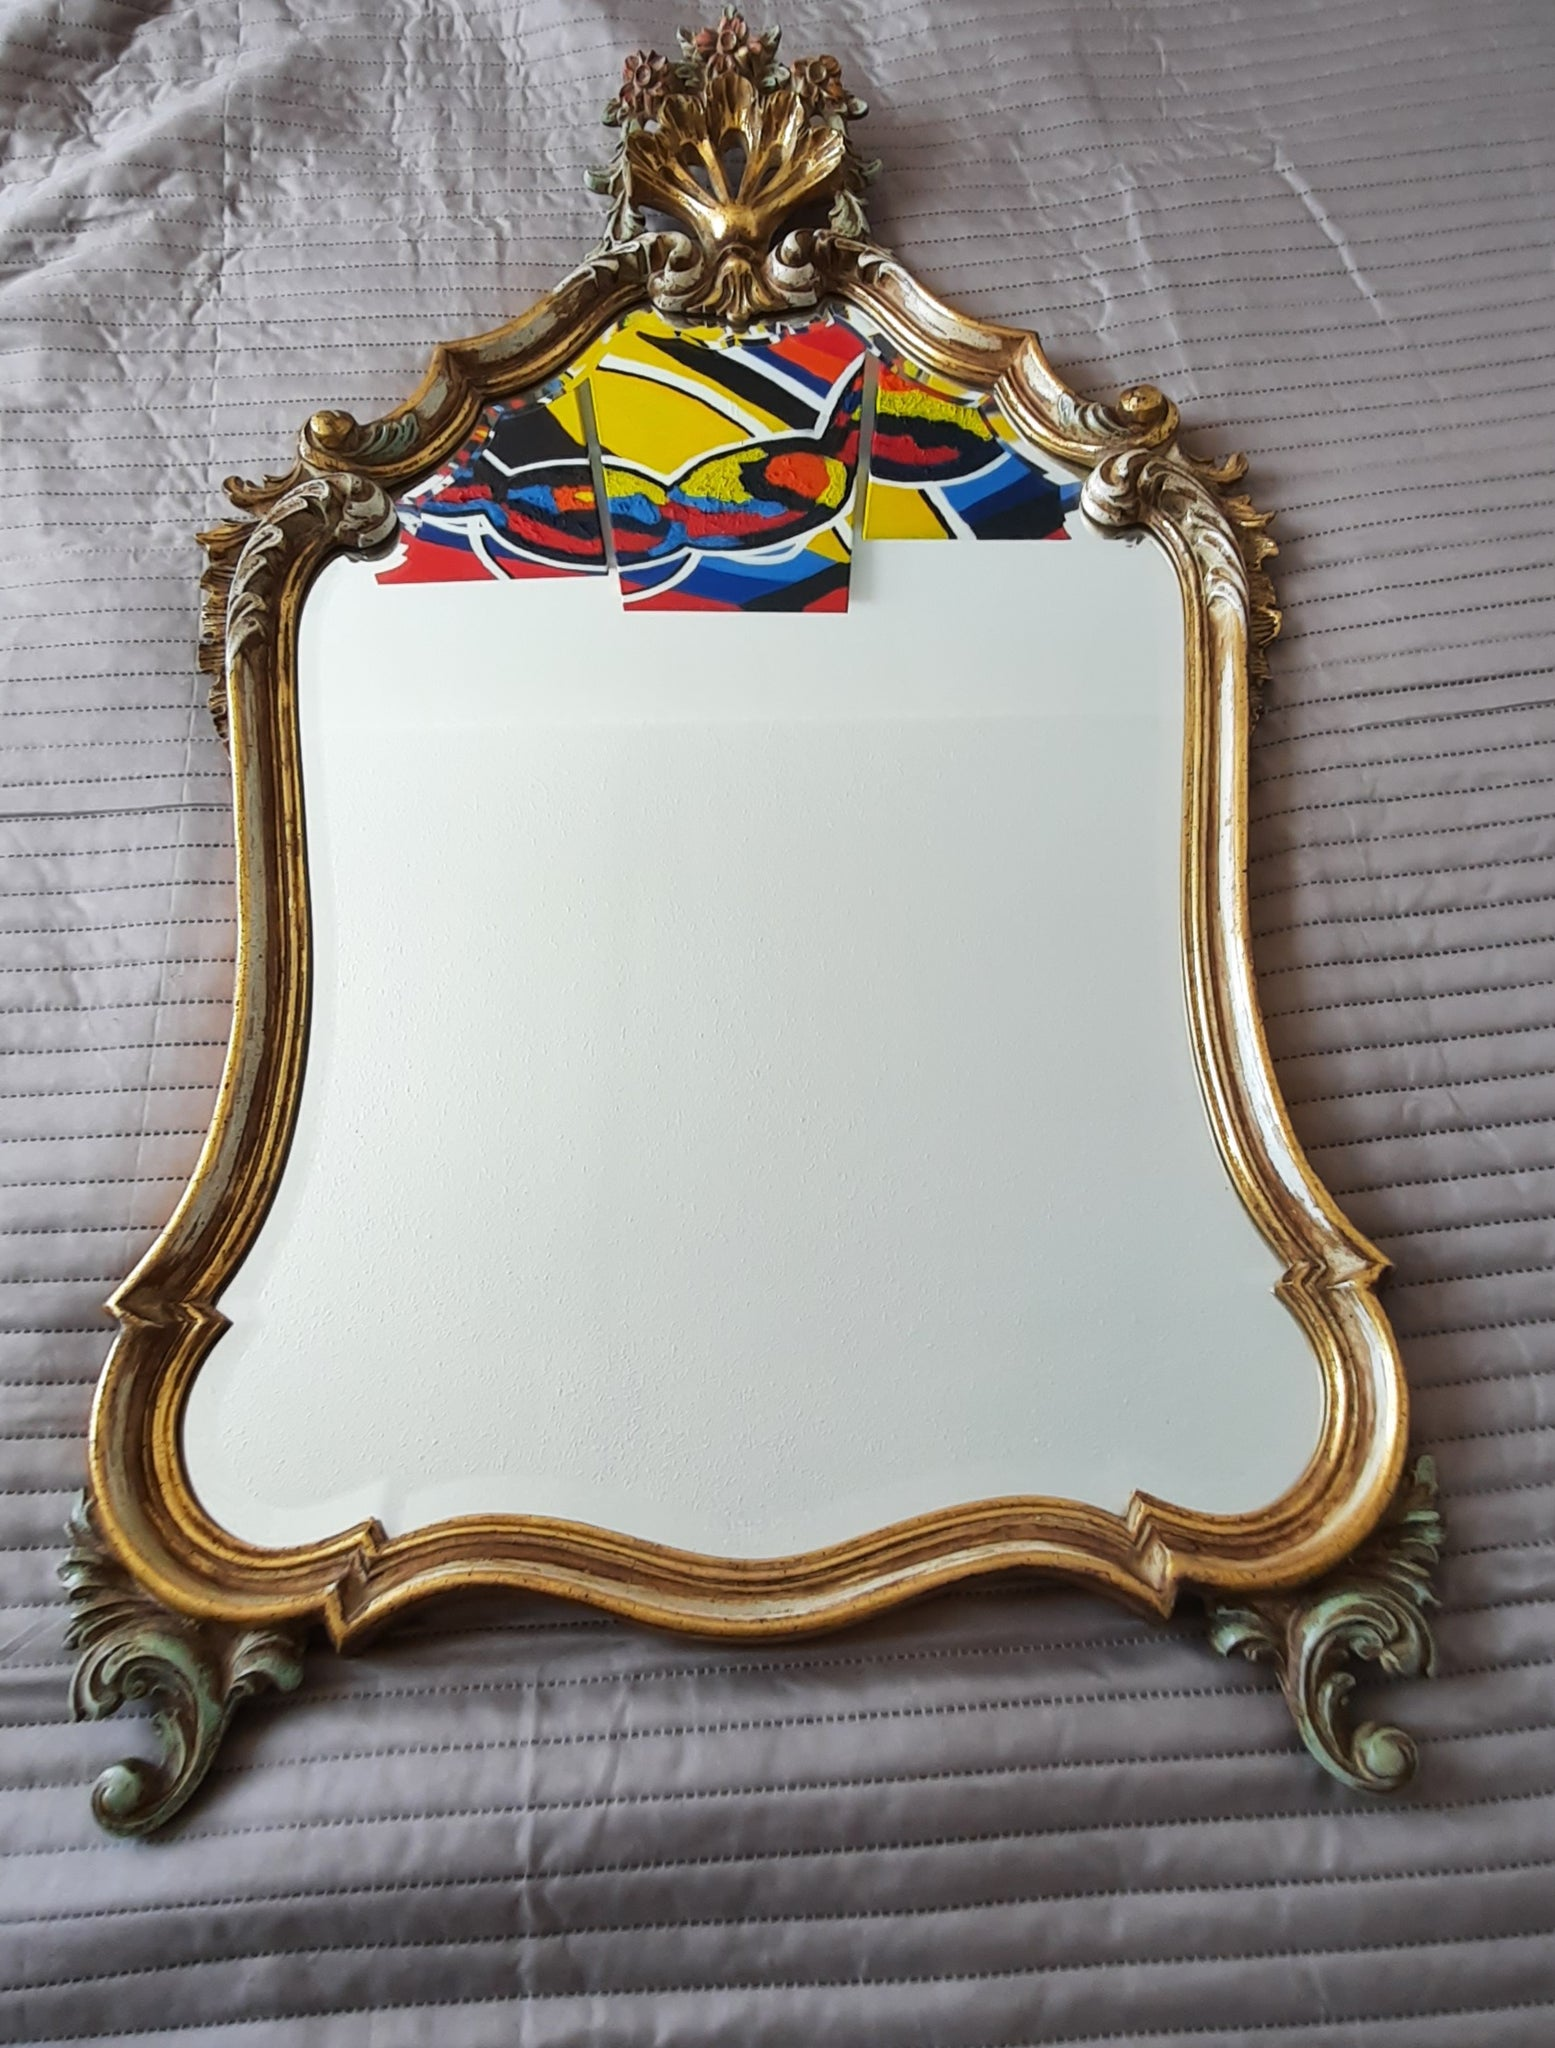 Tweedehands design Beautiful Antique Barok Mirror set